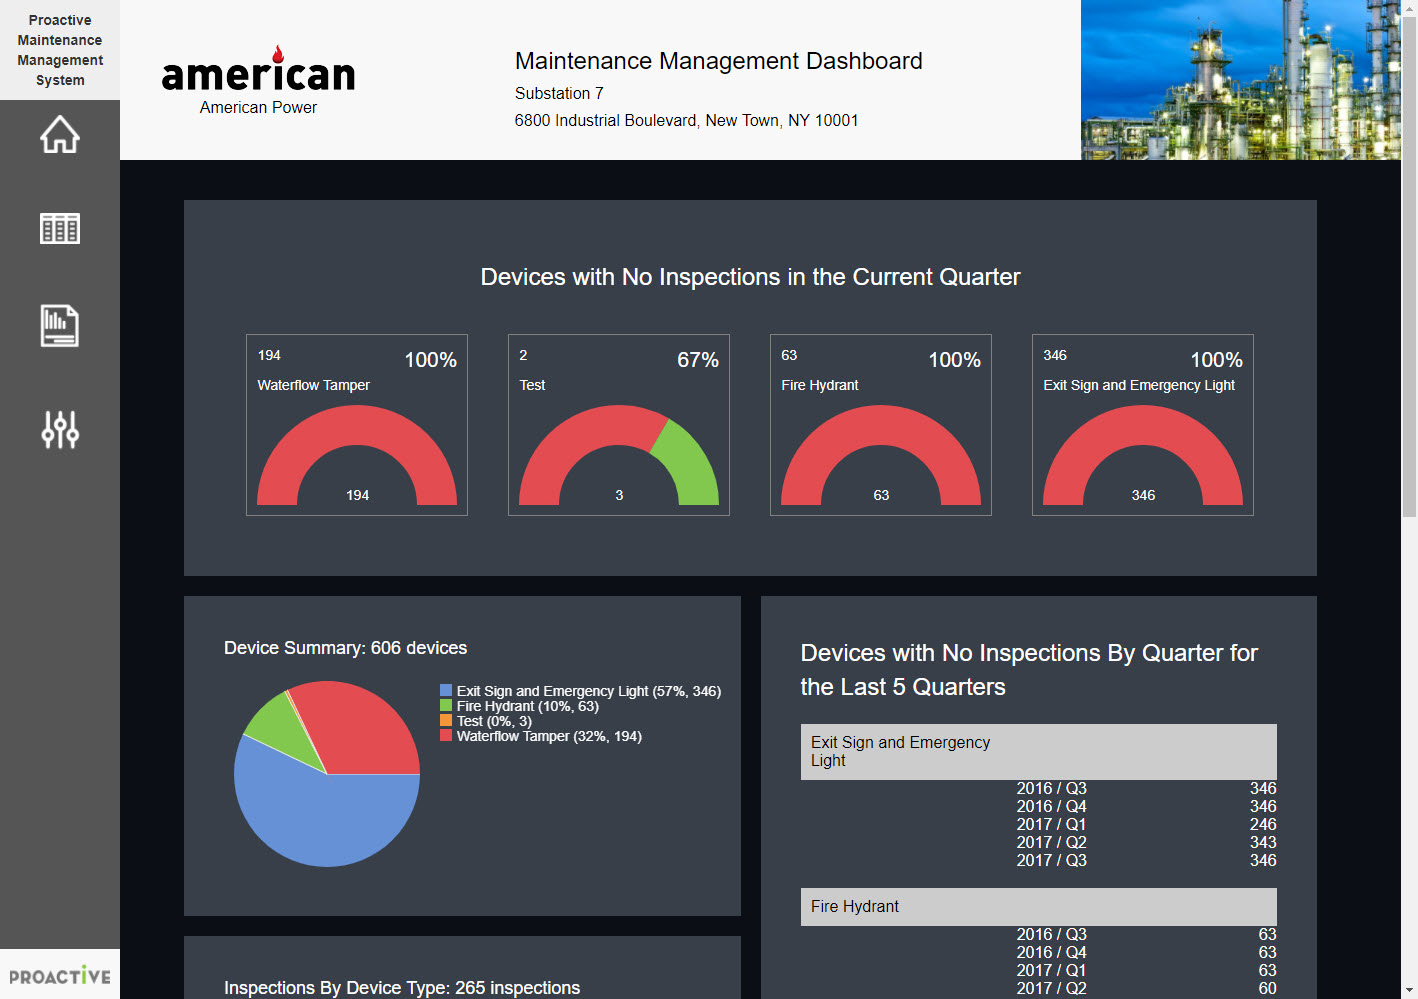 Proactive MM maintenance management dashboard provides bird eye view of equipment management status